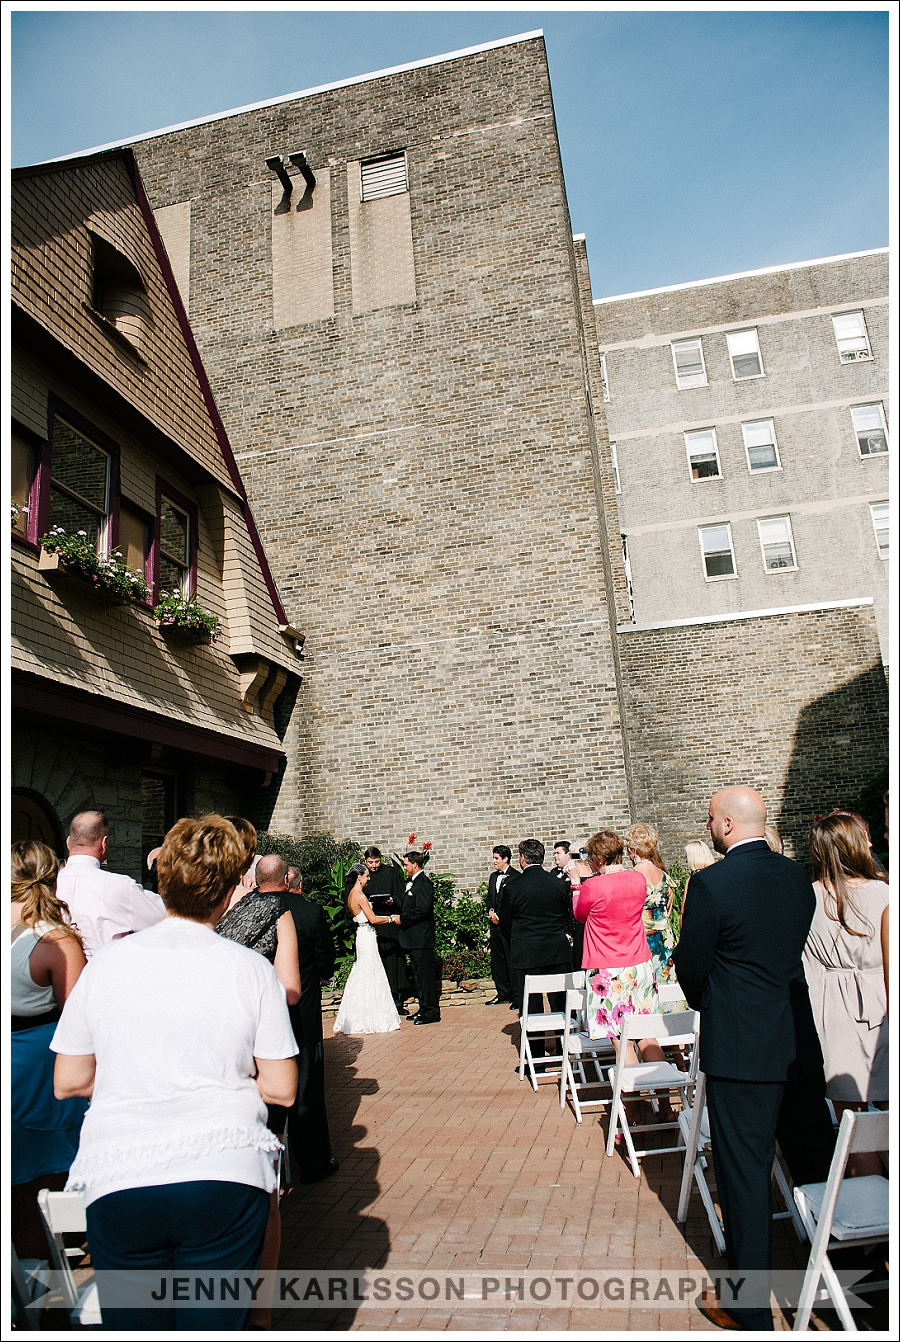 Inn on the Mexican War Streets Wedding